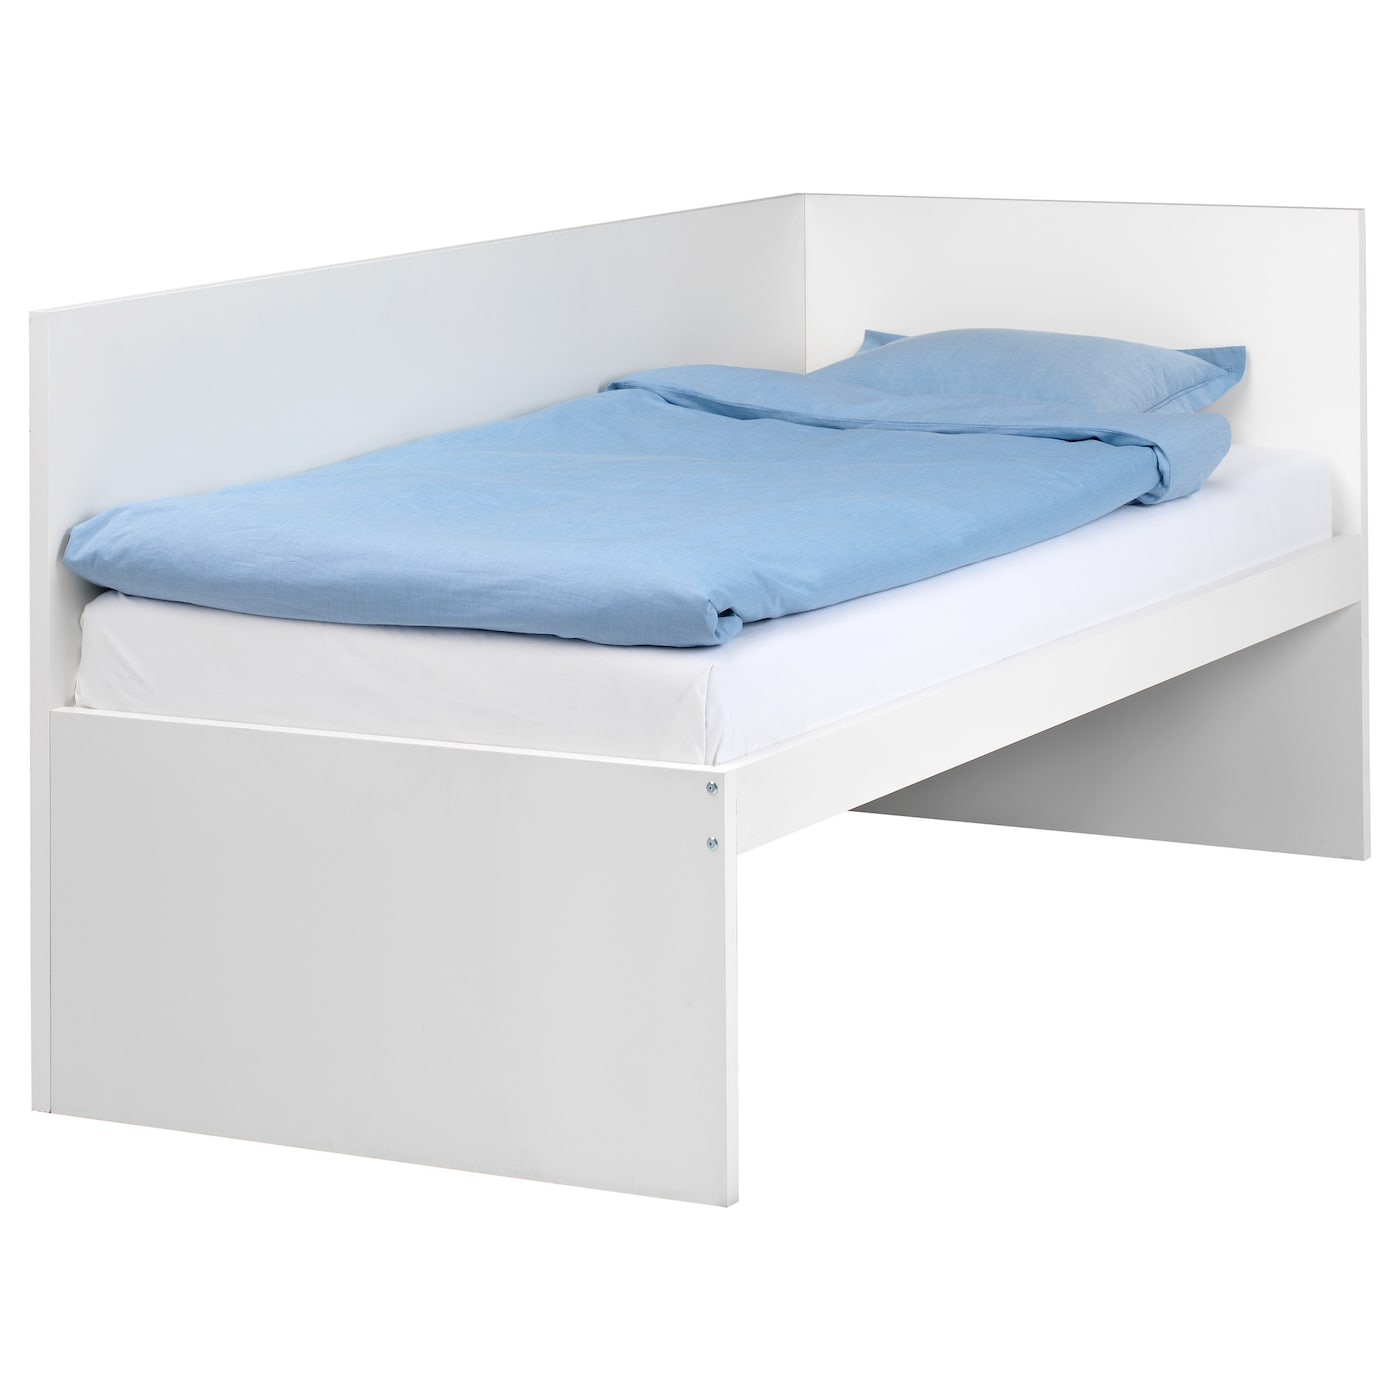 flaxa bed frm w headboard slatted bd base white 90x200 cm. Black Bedroom Furniture Sets. Home Design Ideas